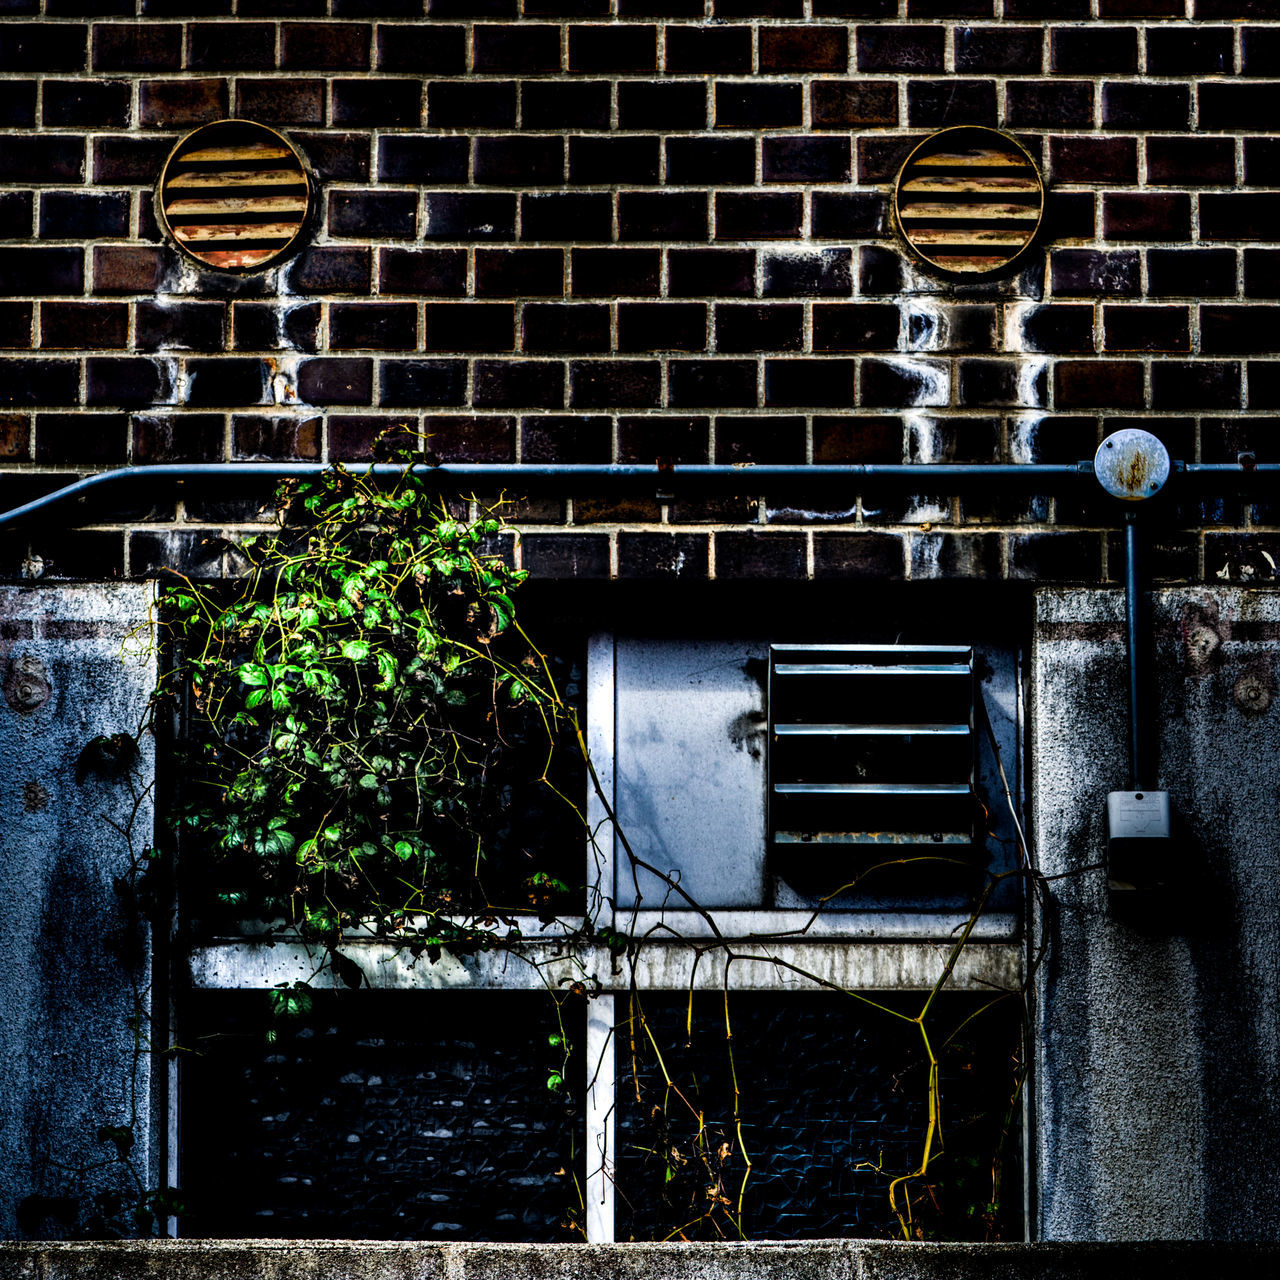 no people, architecture, brick wall, built structure, day, outdoors, plant, building exterior